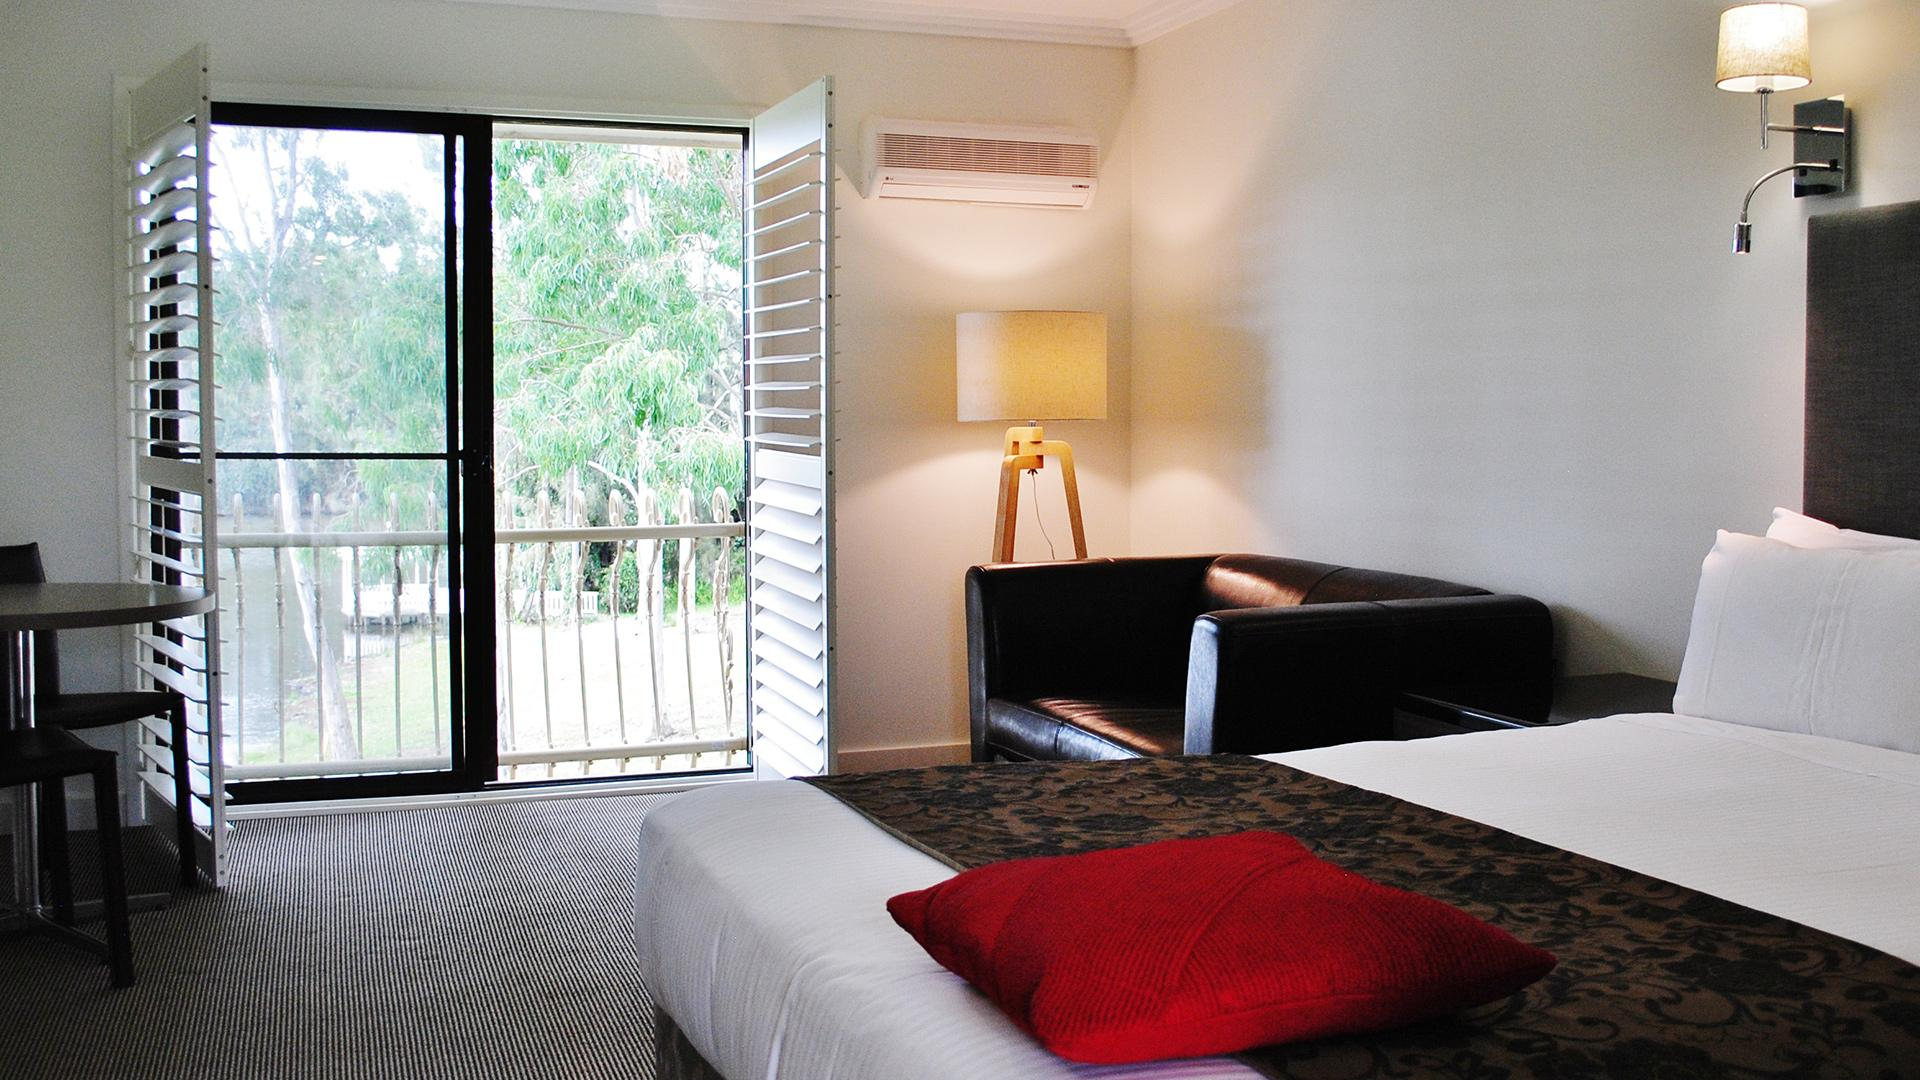 Queen Executive Room image 1 at Lincoln Downs Resort, Batemans Bay BW Signature Collection by Best Western by Eurobodalla Shire Council, New South Wales, Australia